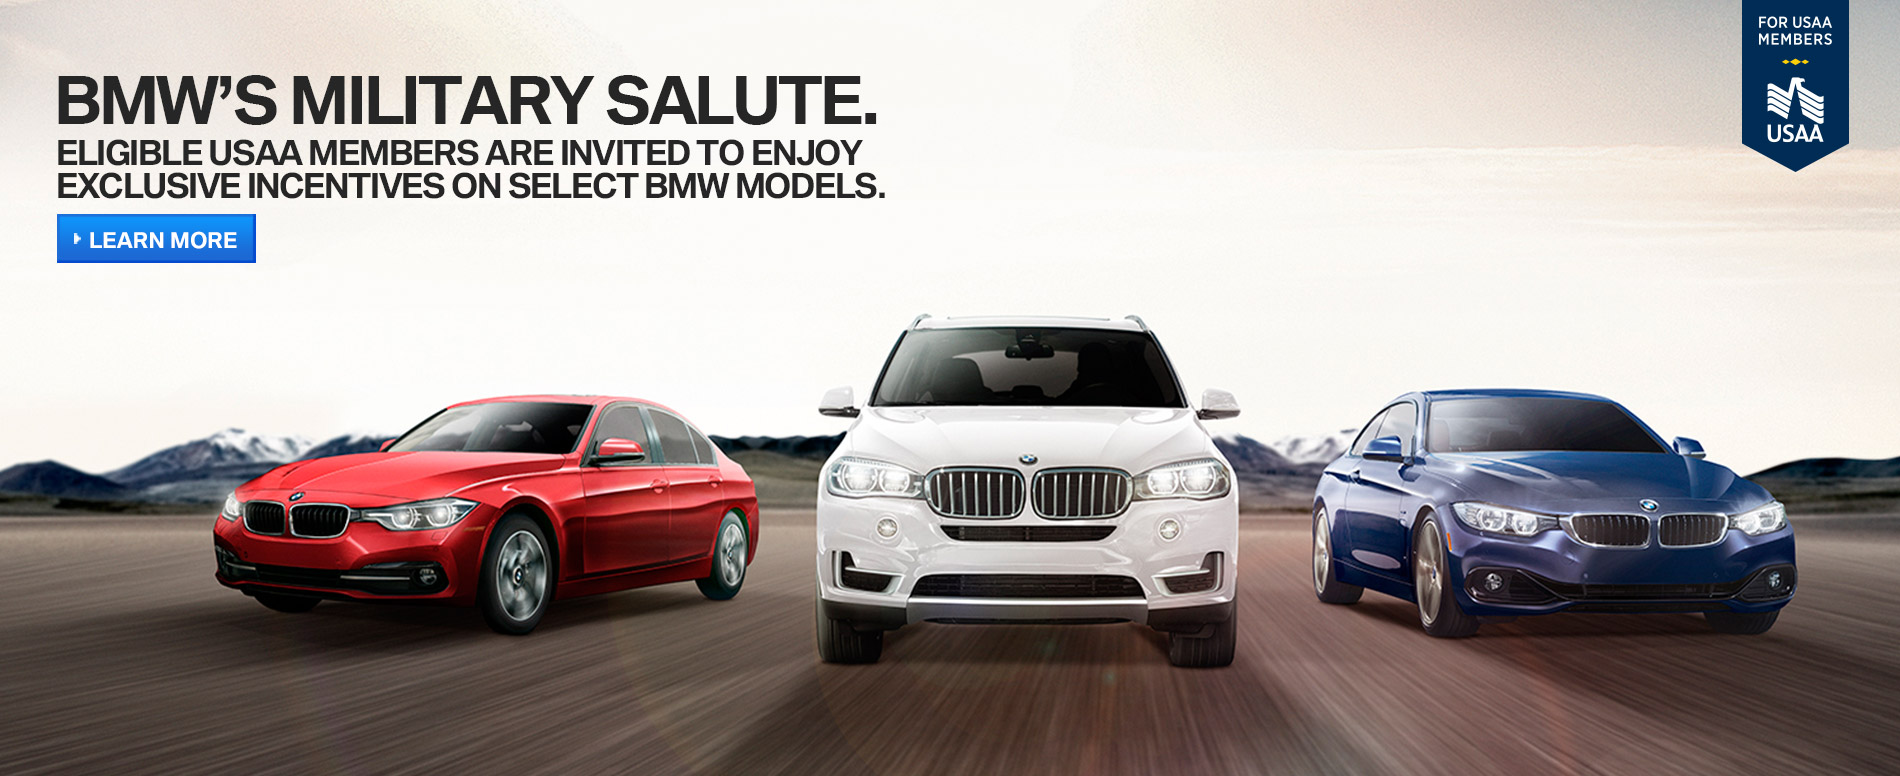 New bmw vehicles for sale plano tx click get classic bmw